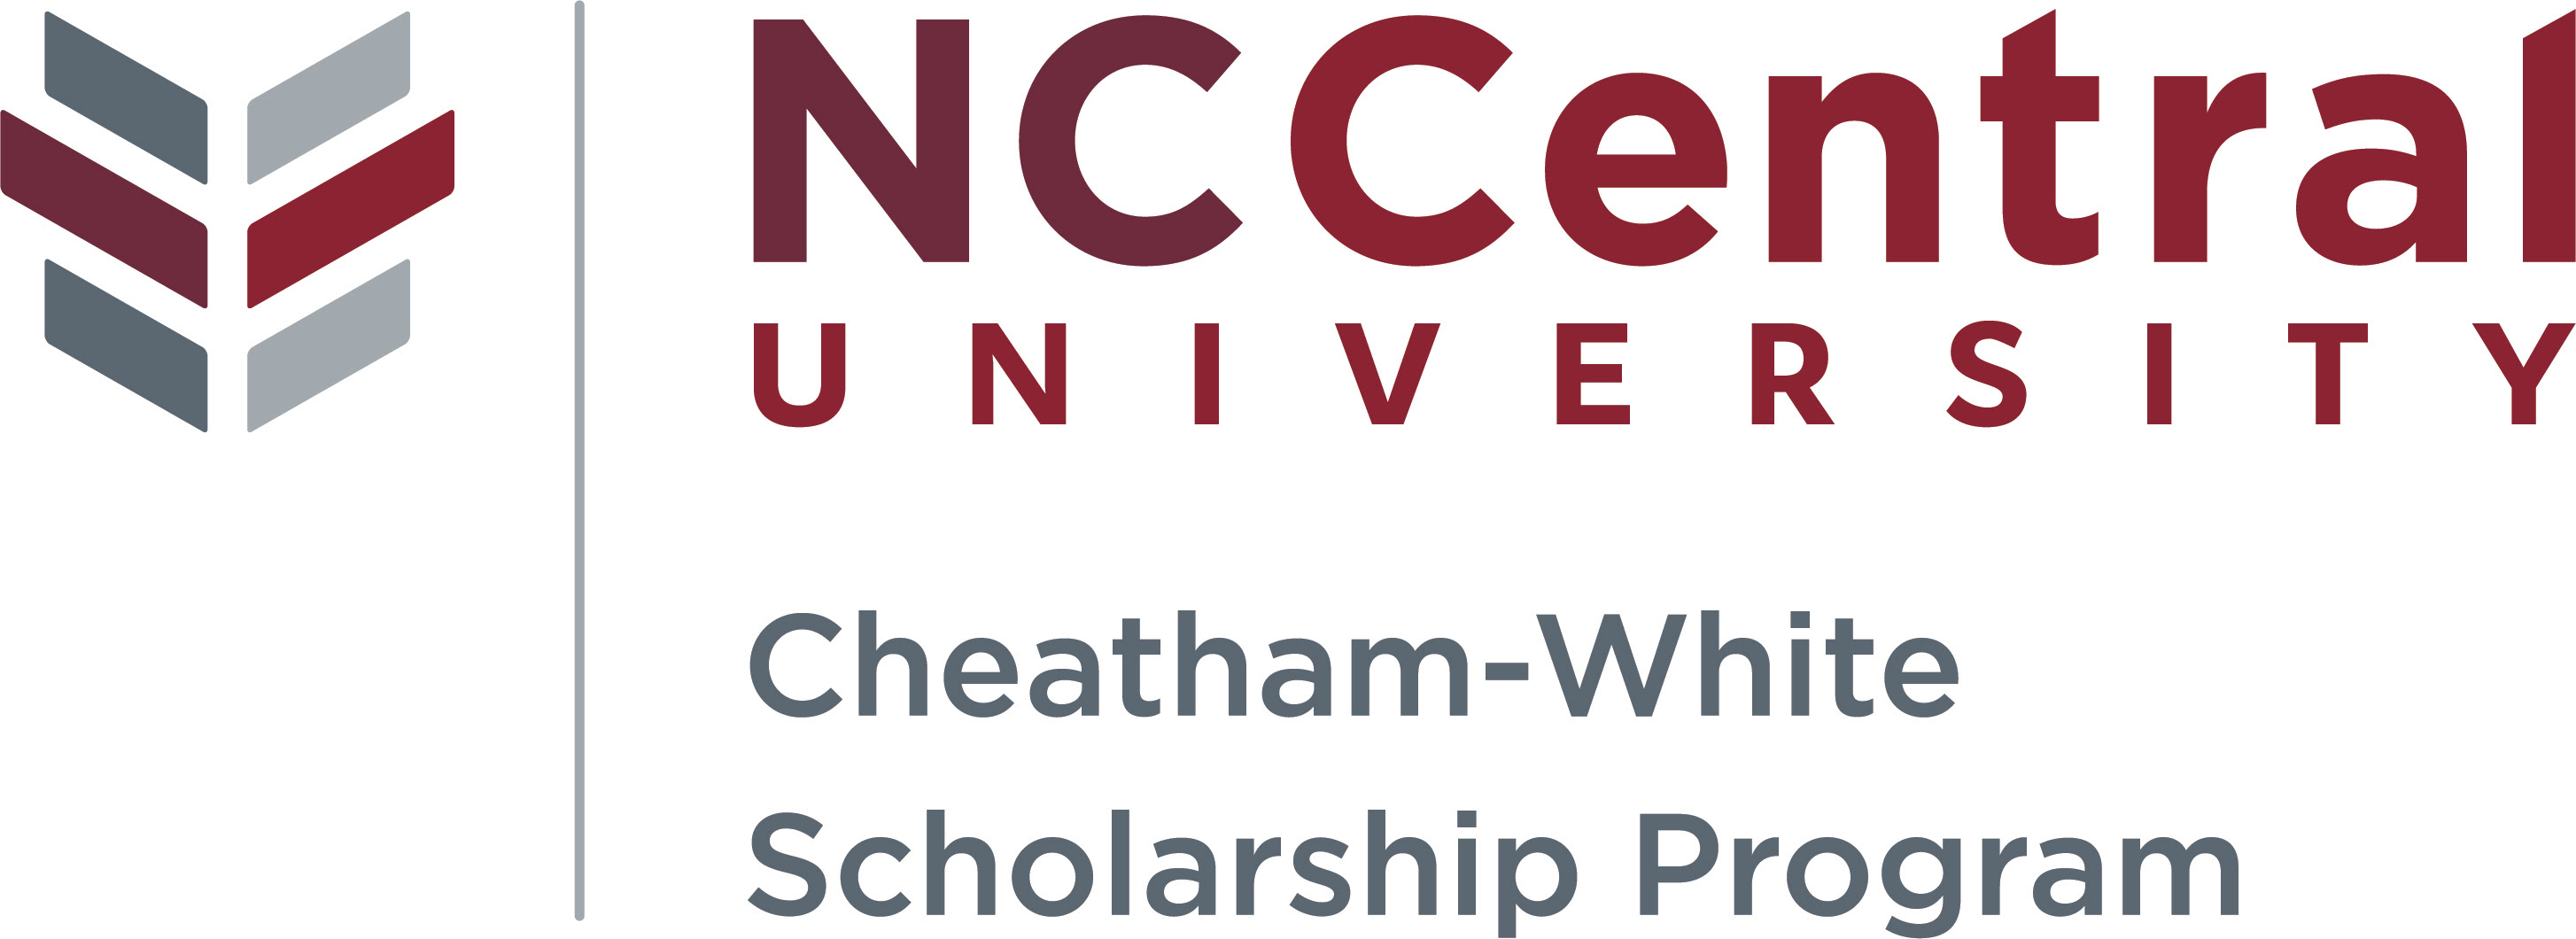 NC Central, Cheatham-White Scholarship Program